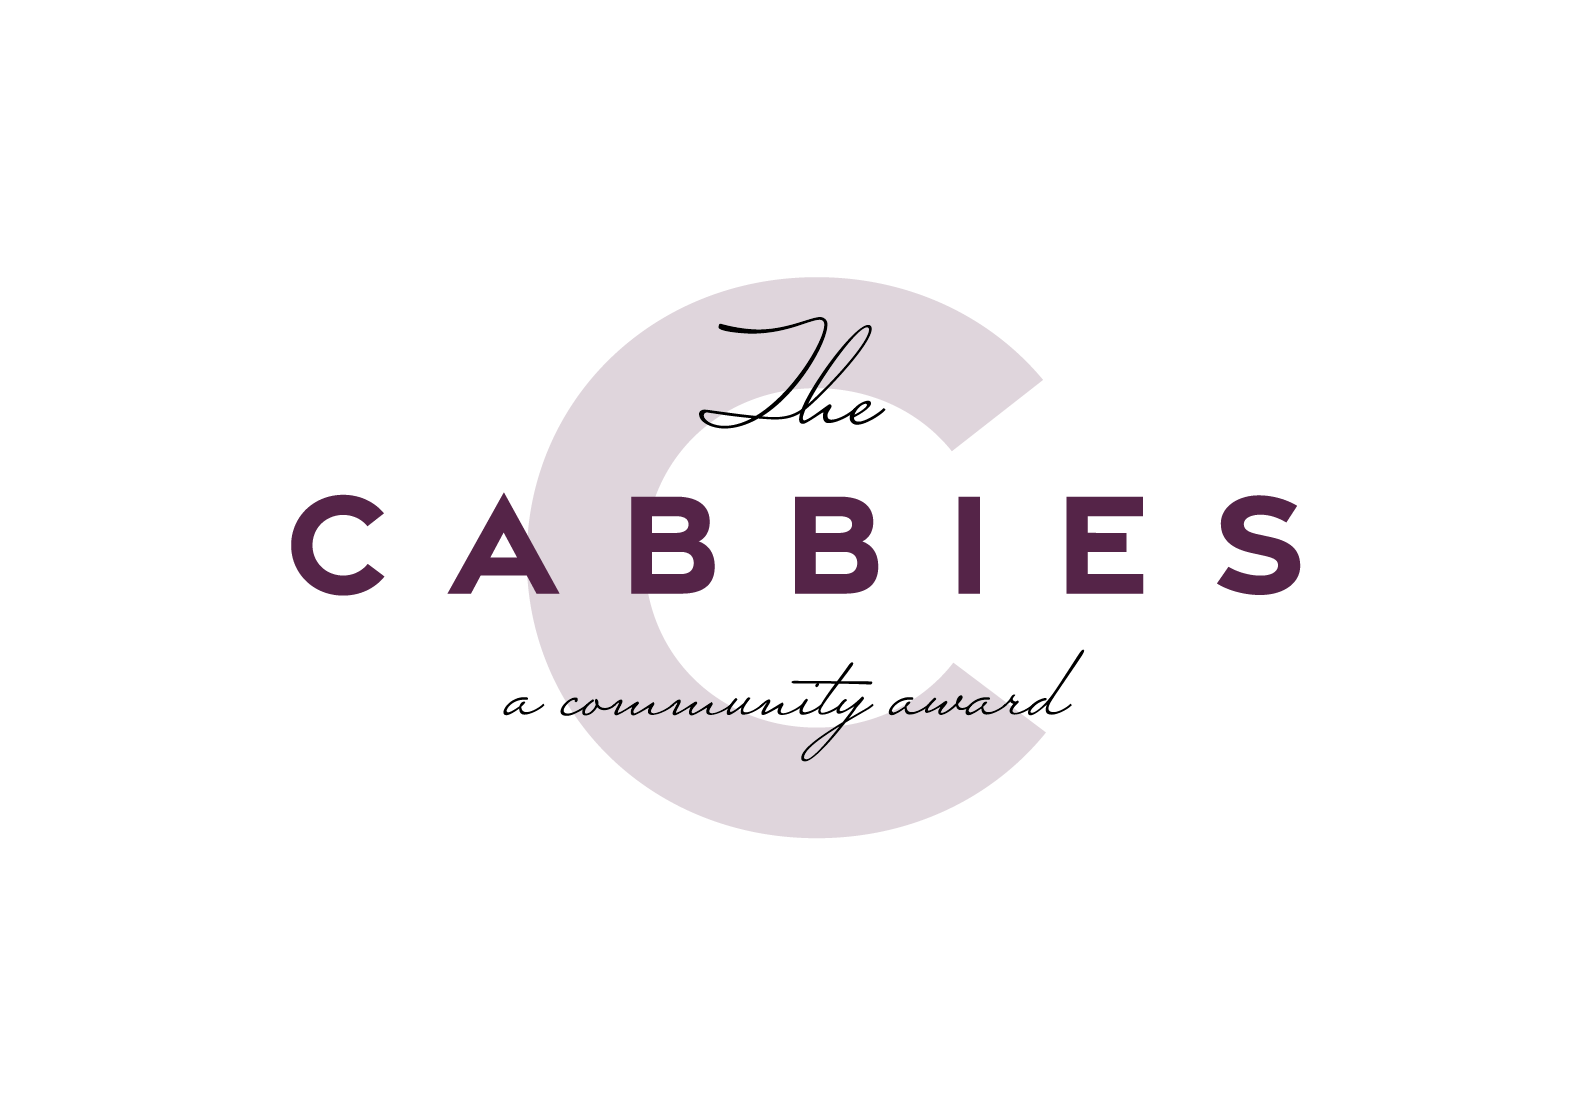 The Cabbies - Logo